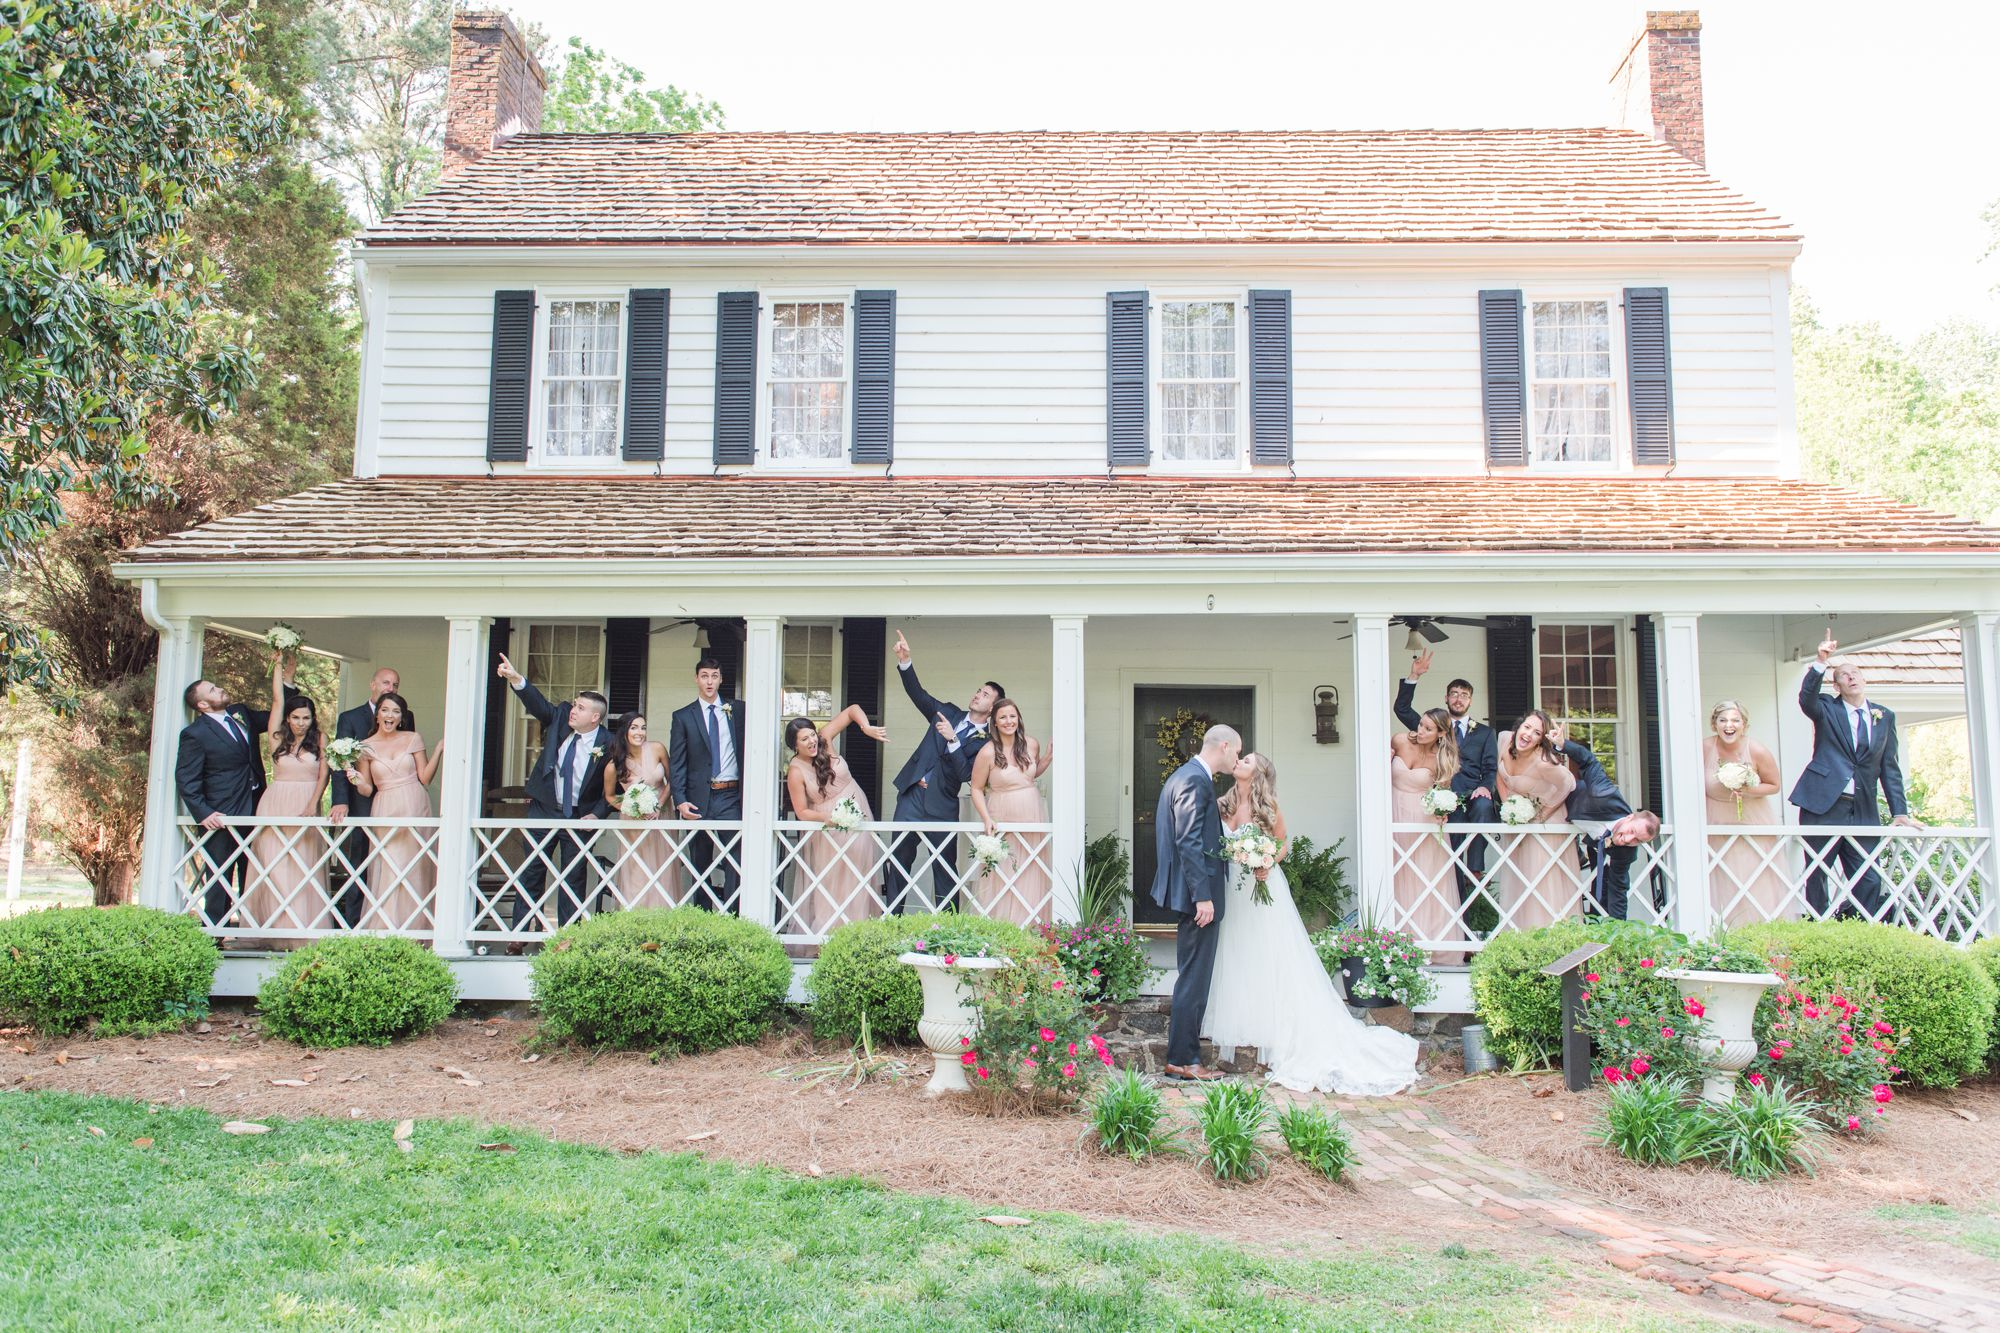 beaver-dam-house-davidson-nc-wedding-photos 38